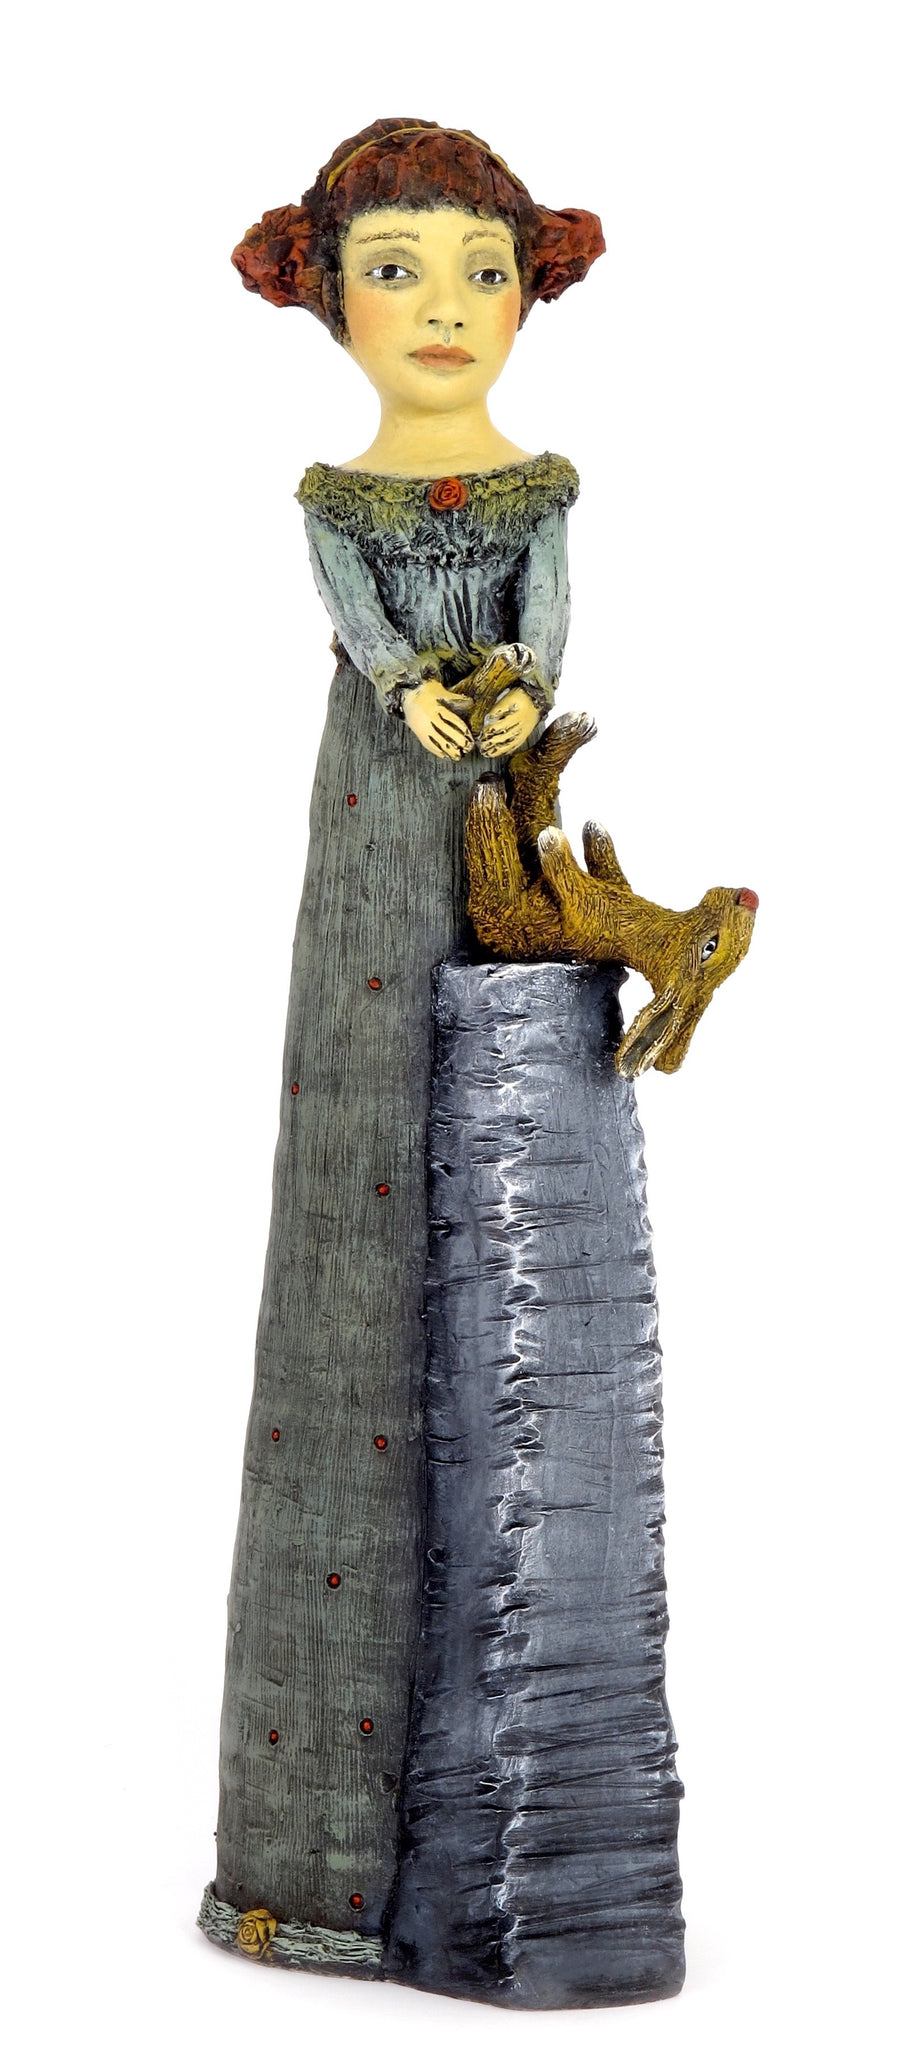 "SOLD   ""Returning Lucky's foot"" original ceramic sculpture by Jacquline Hurlbert"